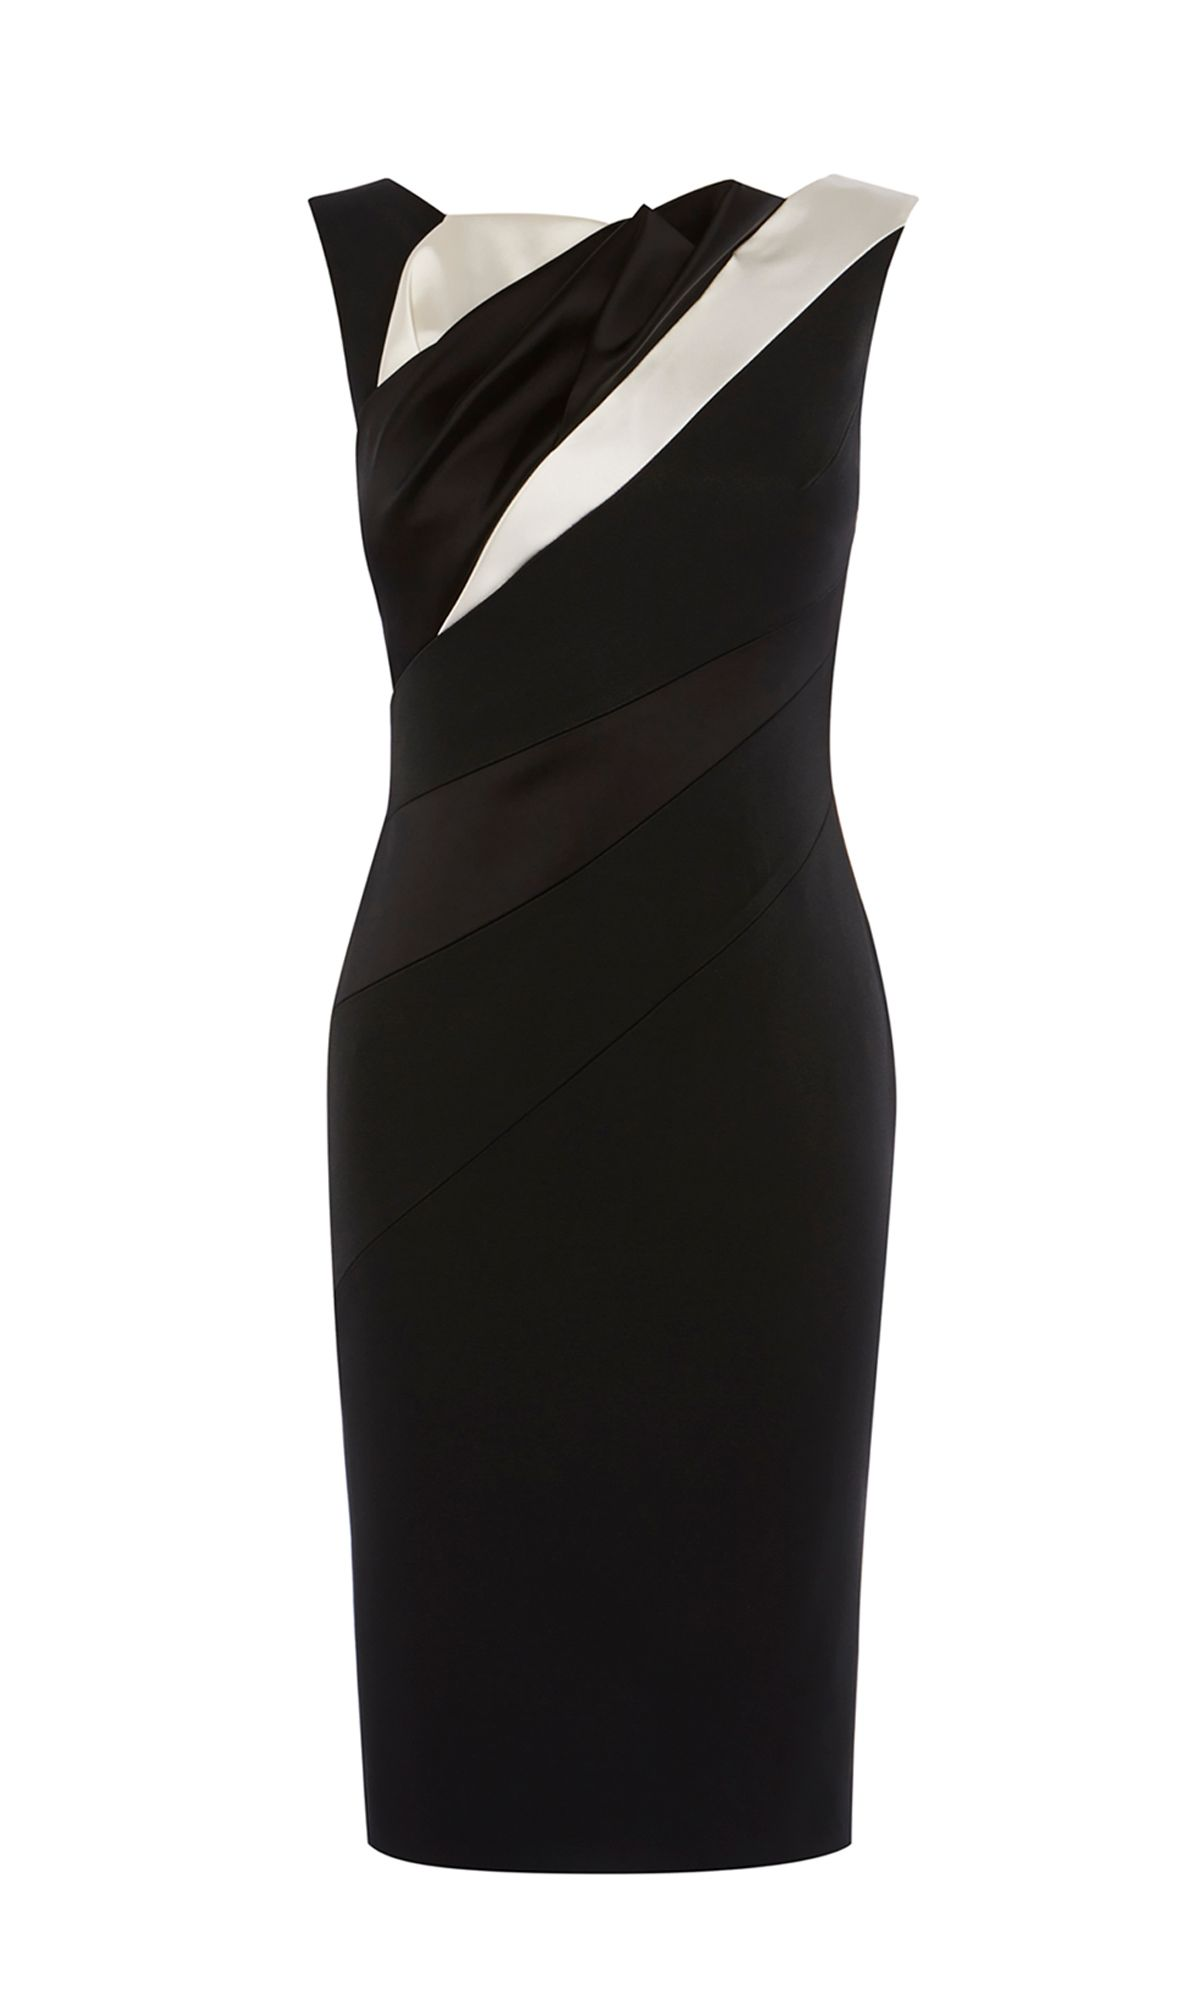 Karen Millen Diagonal Seam Pencil Dress, Black/White